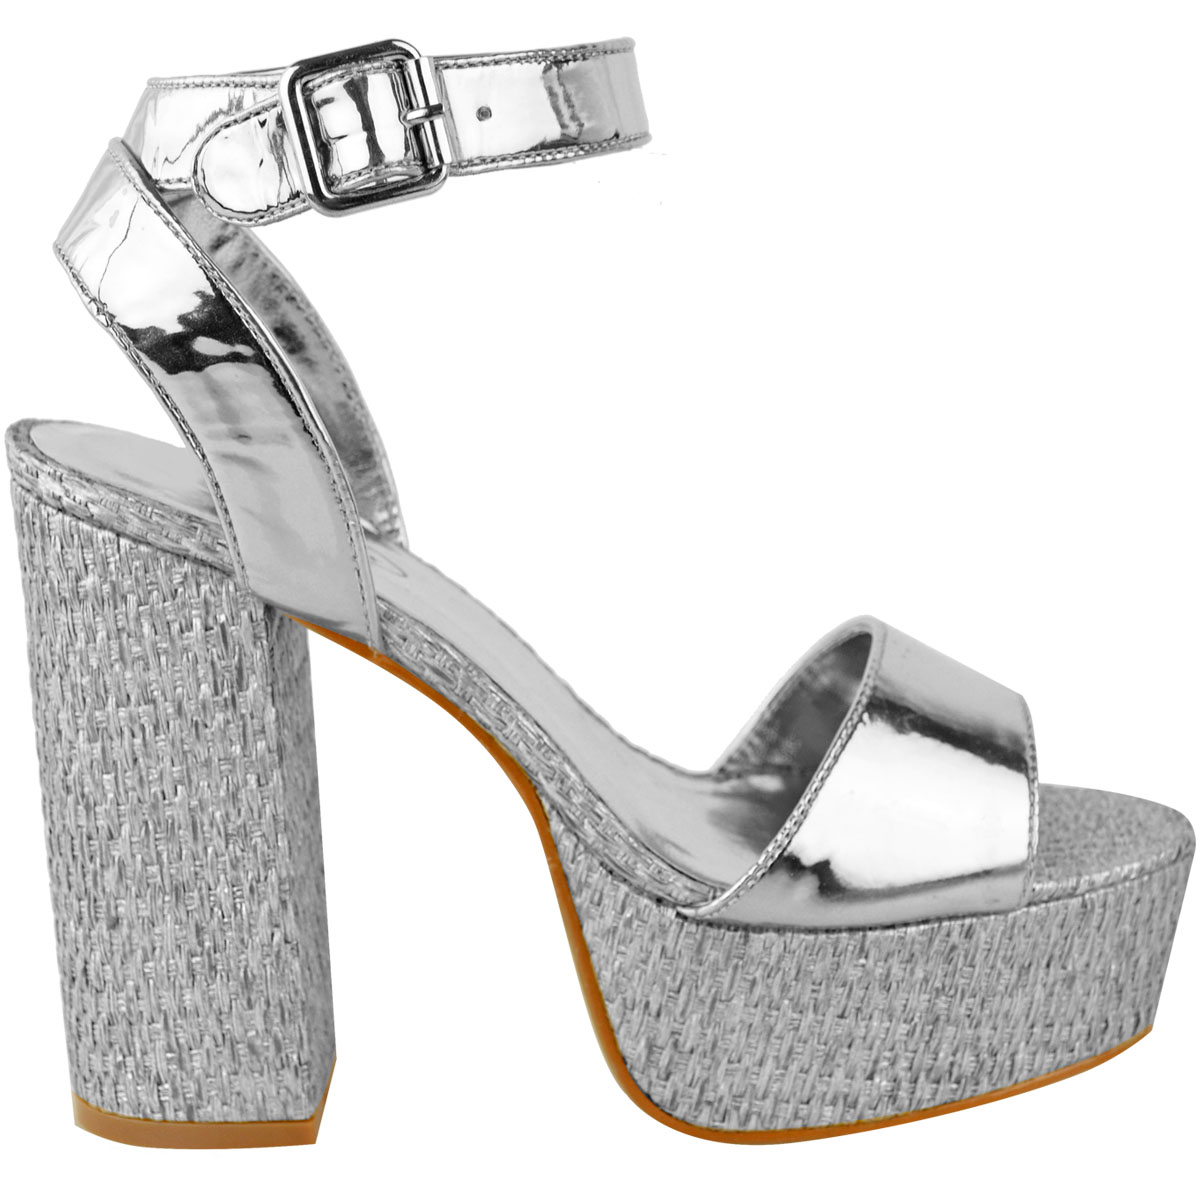 Womens-Ladies-Platforms-Sandals-Block-Heel-Ankle-Strap-Summer-Barely-There-Size thumbnail 9